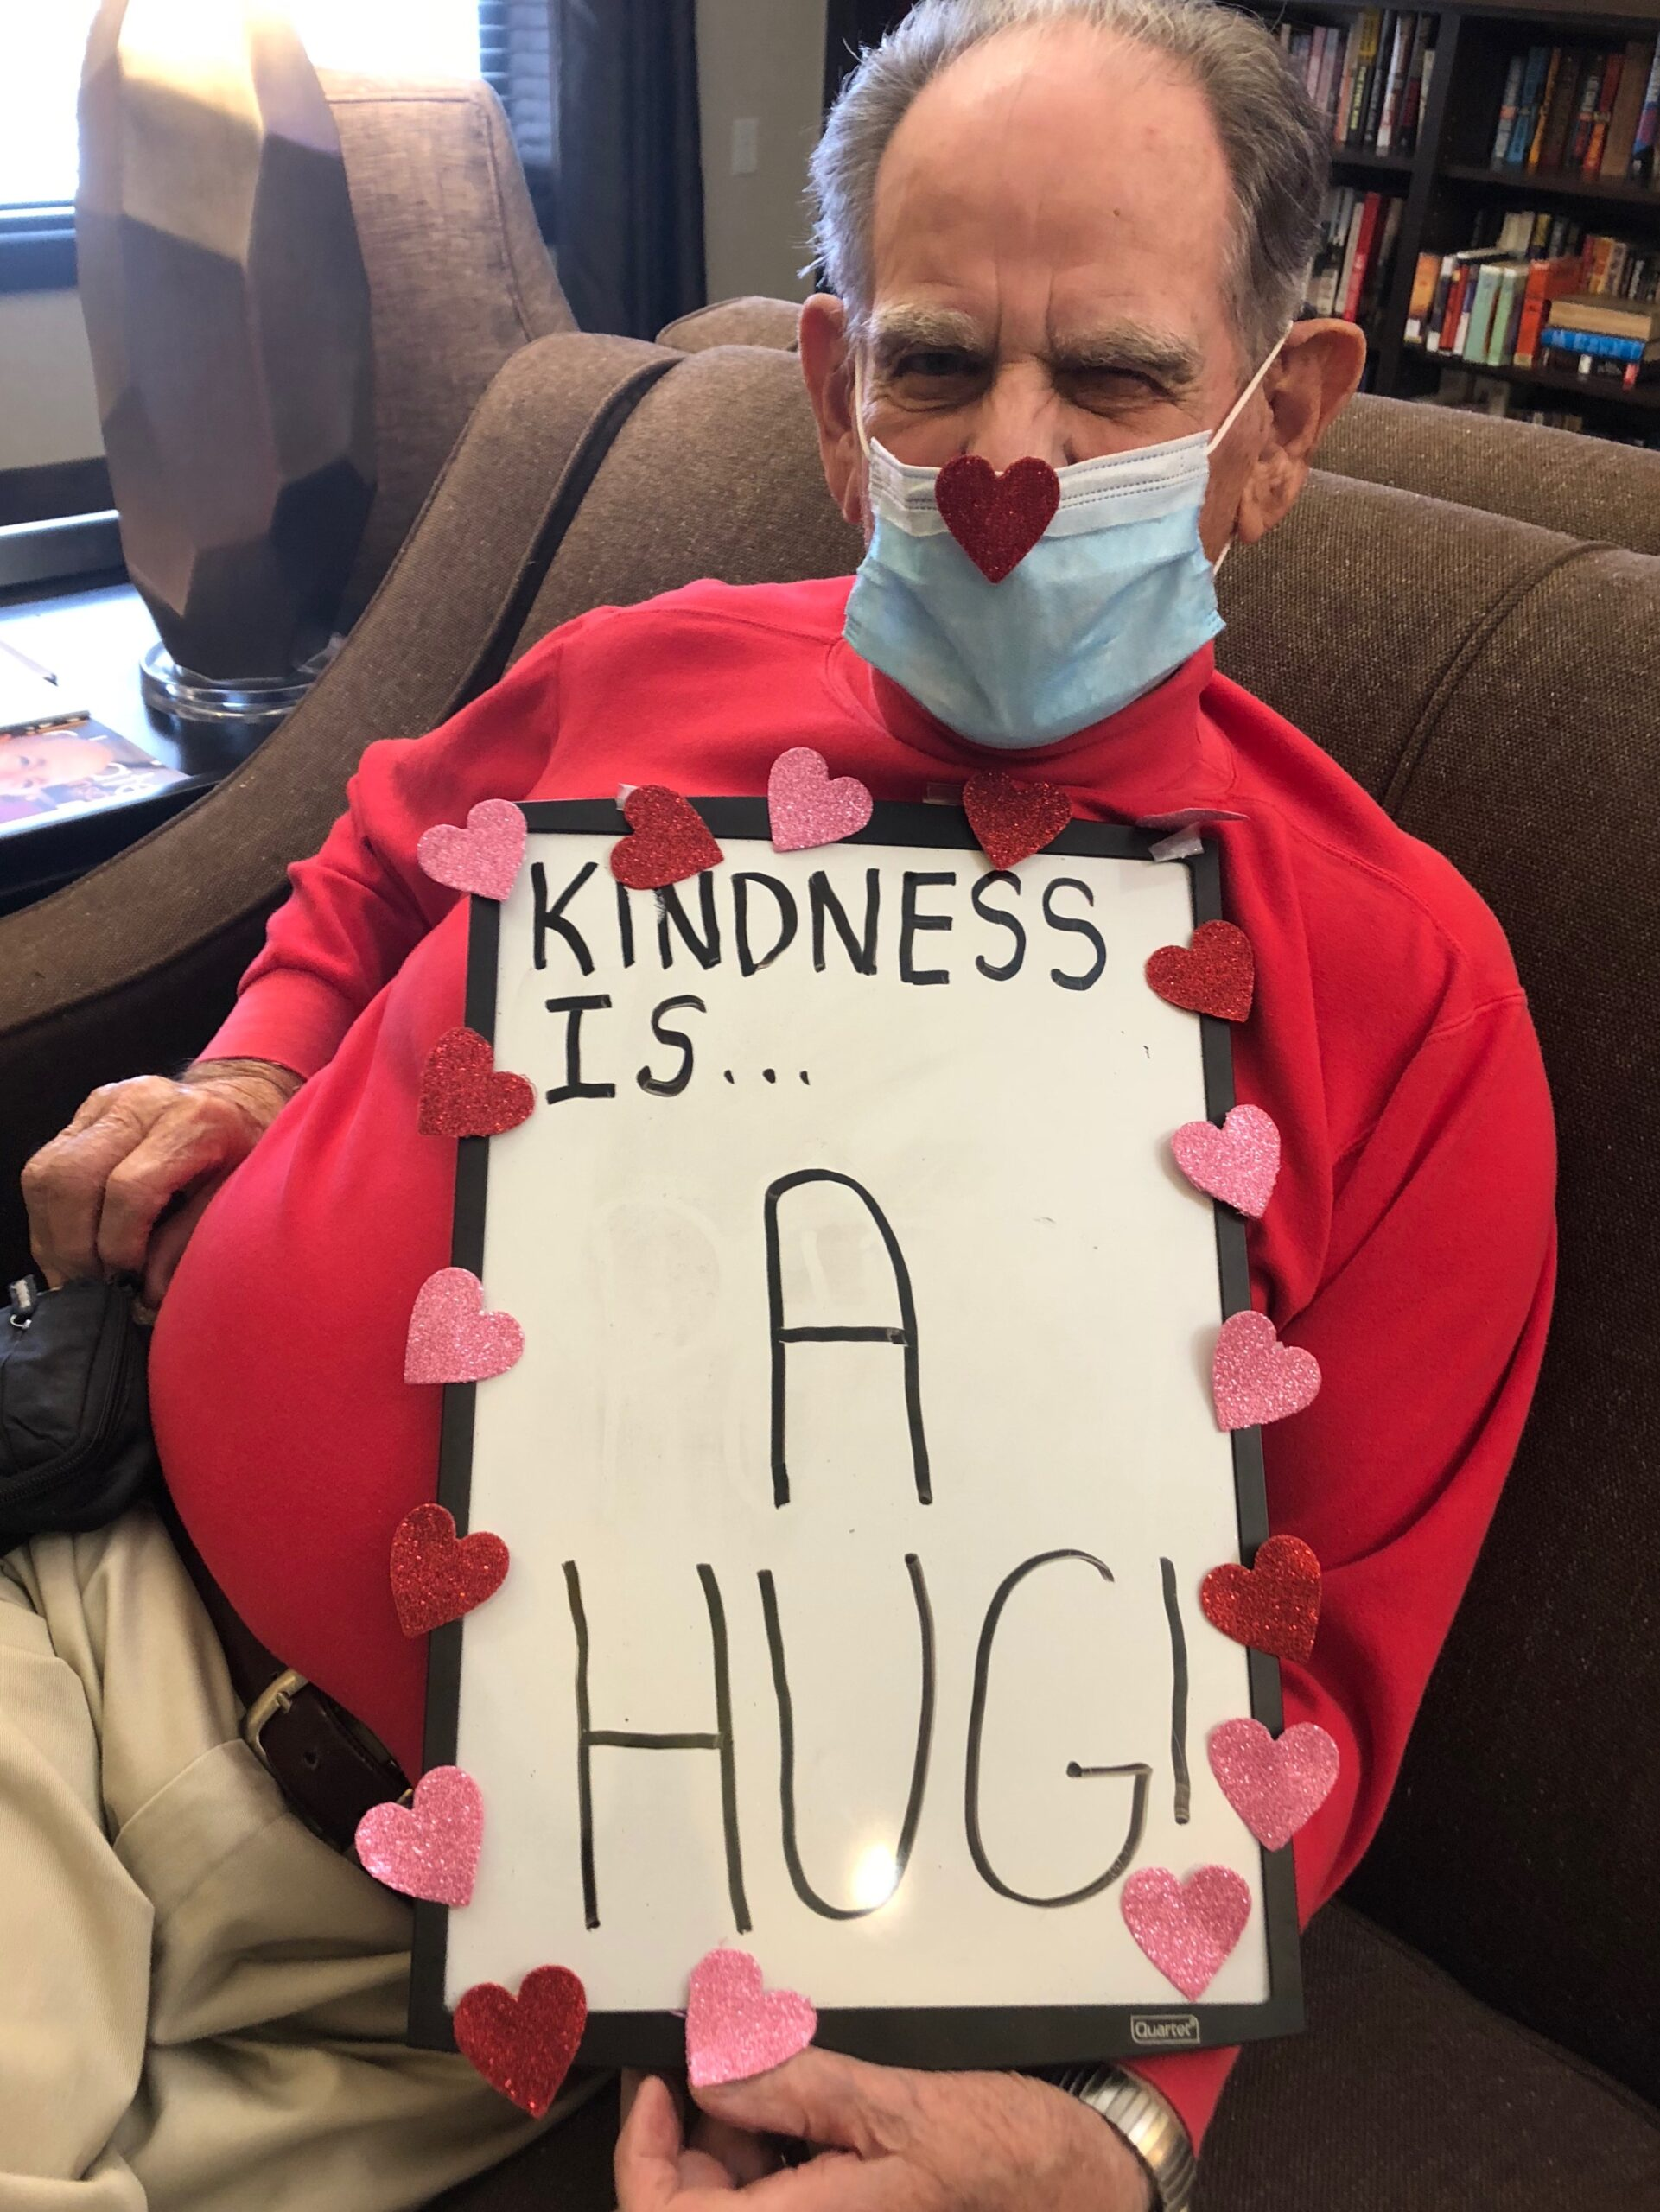 Random Acts of Kindness Day- In celebration of Random Acts of Kindness Day residents and staff told what kindness meant to them- For Walter the Kindness comes from the past hugs he's received from the staff and family members. He is hopeful for the day we can all give hugs freely again!